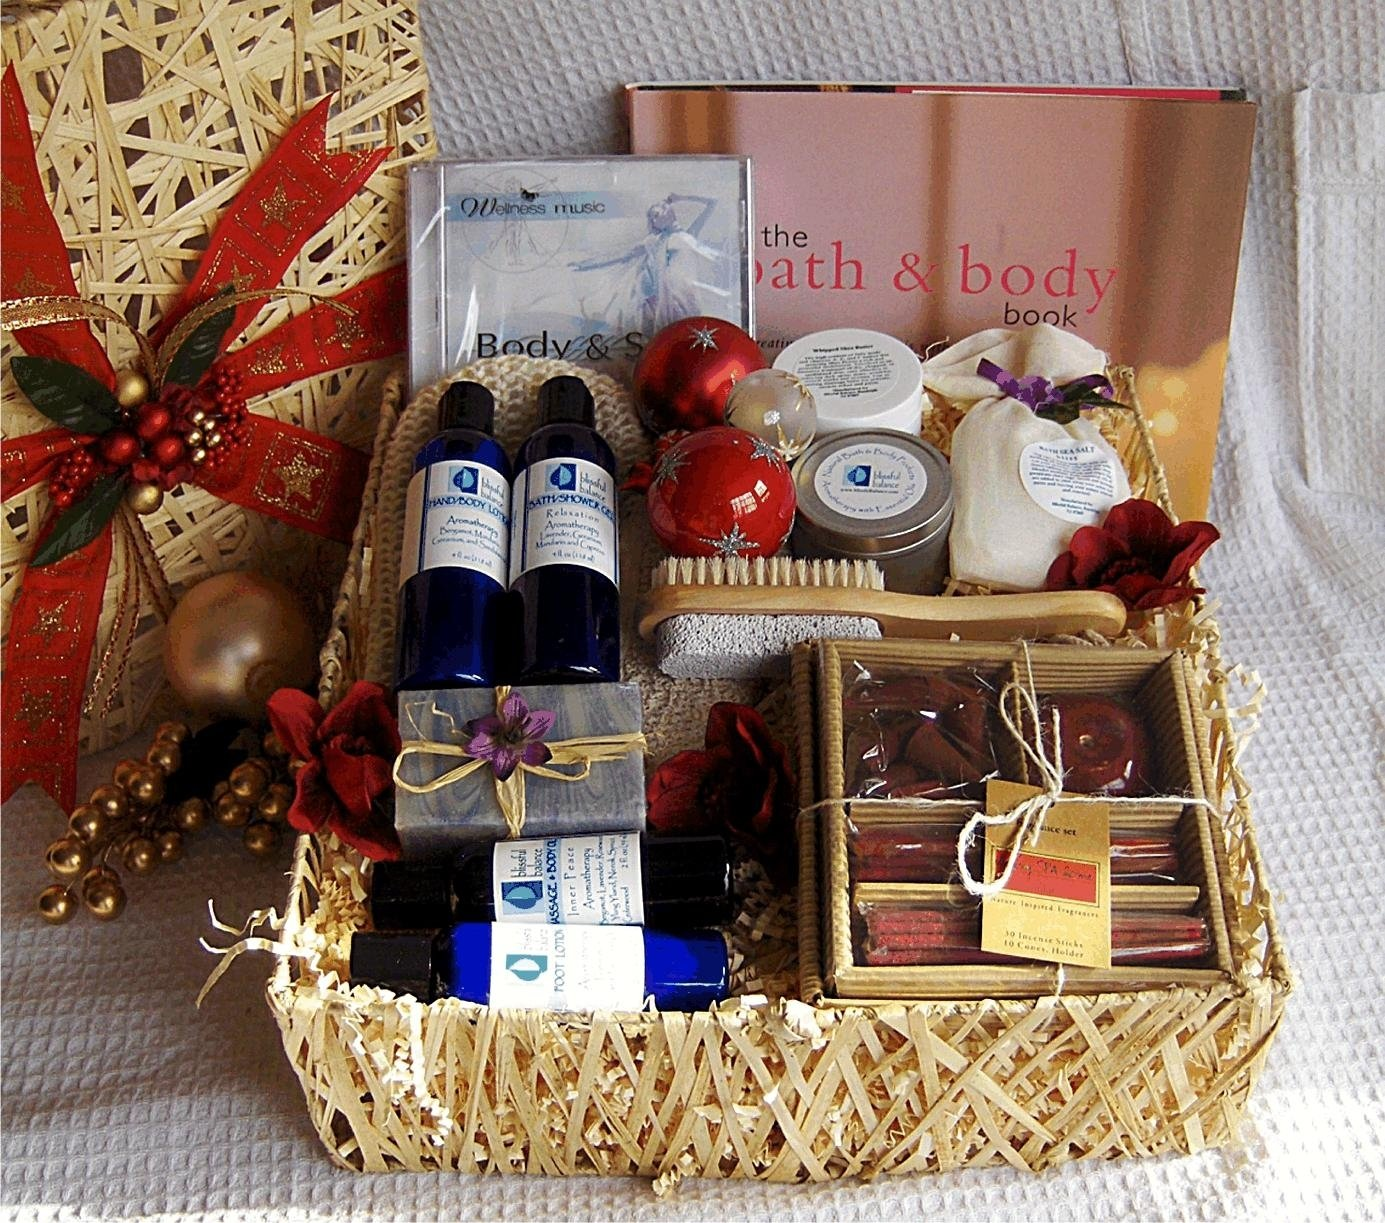 10 Trendy Gift Basket Ideas For Couples 13 gift basket ideas for your great gifts women wellnessbeauty 2020